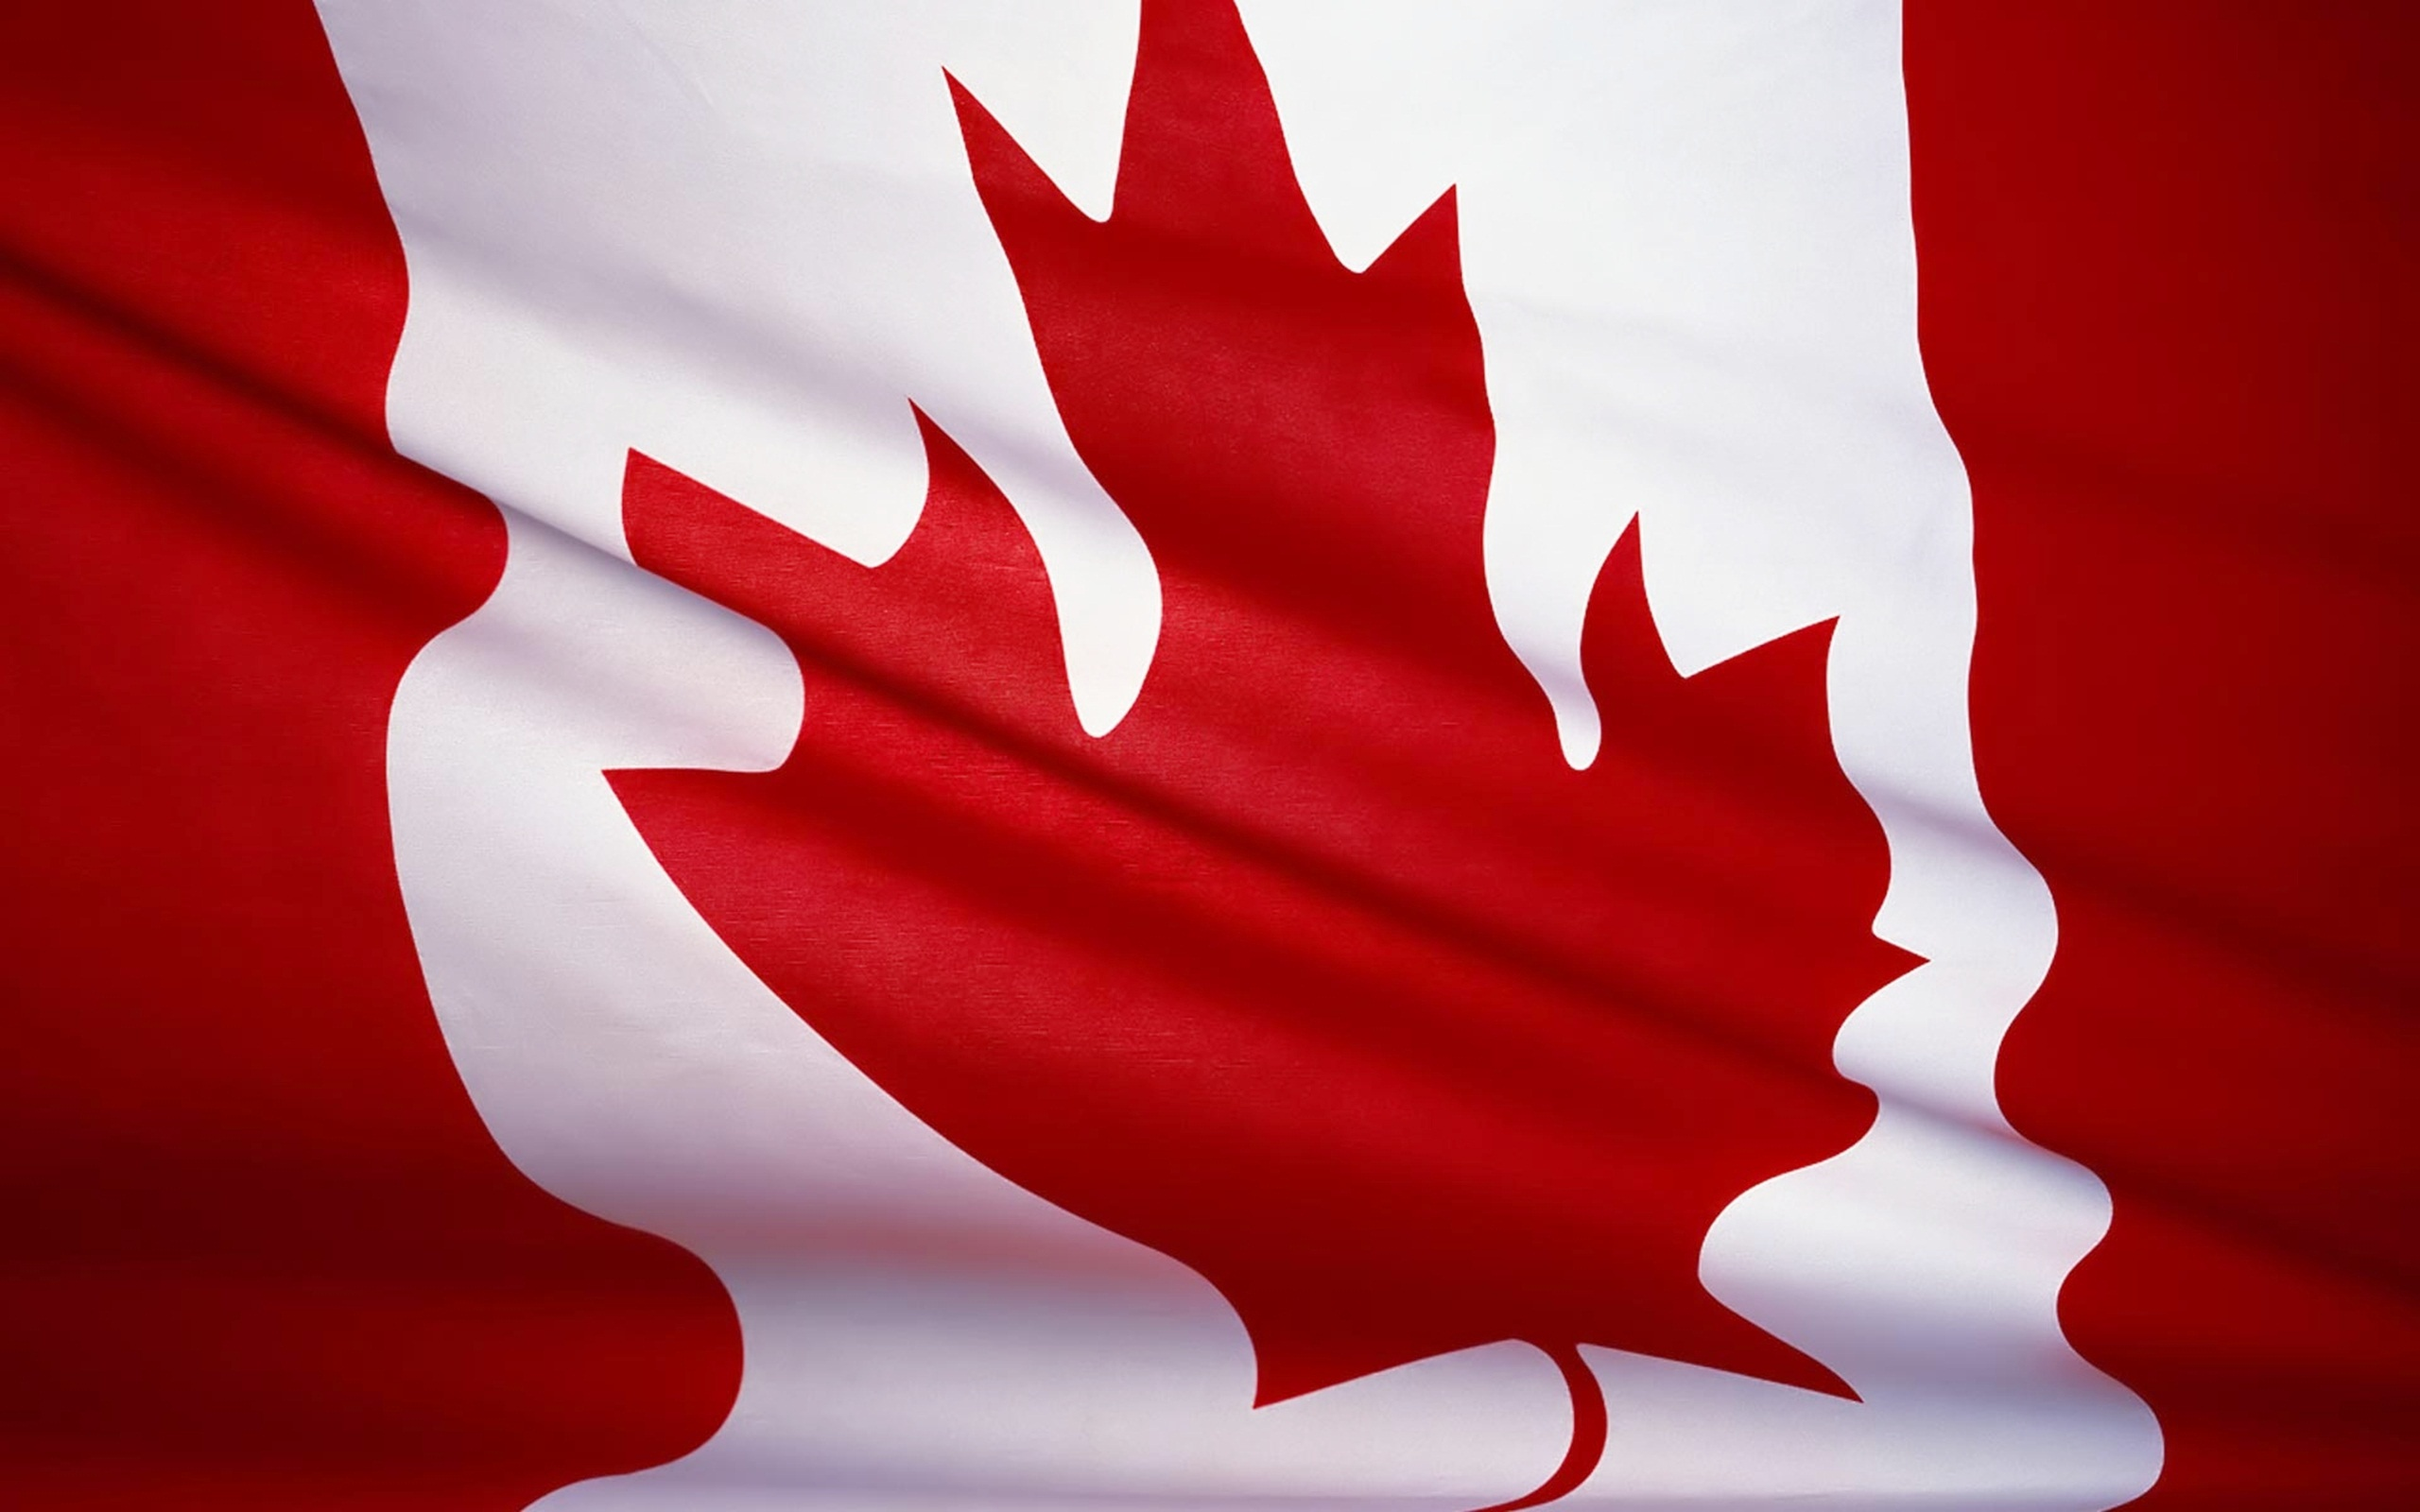 Canada National Flag 406.05 Kb